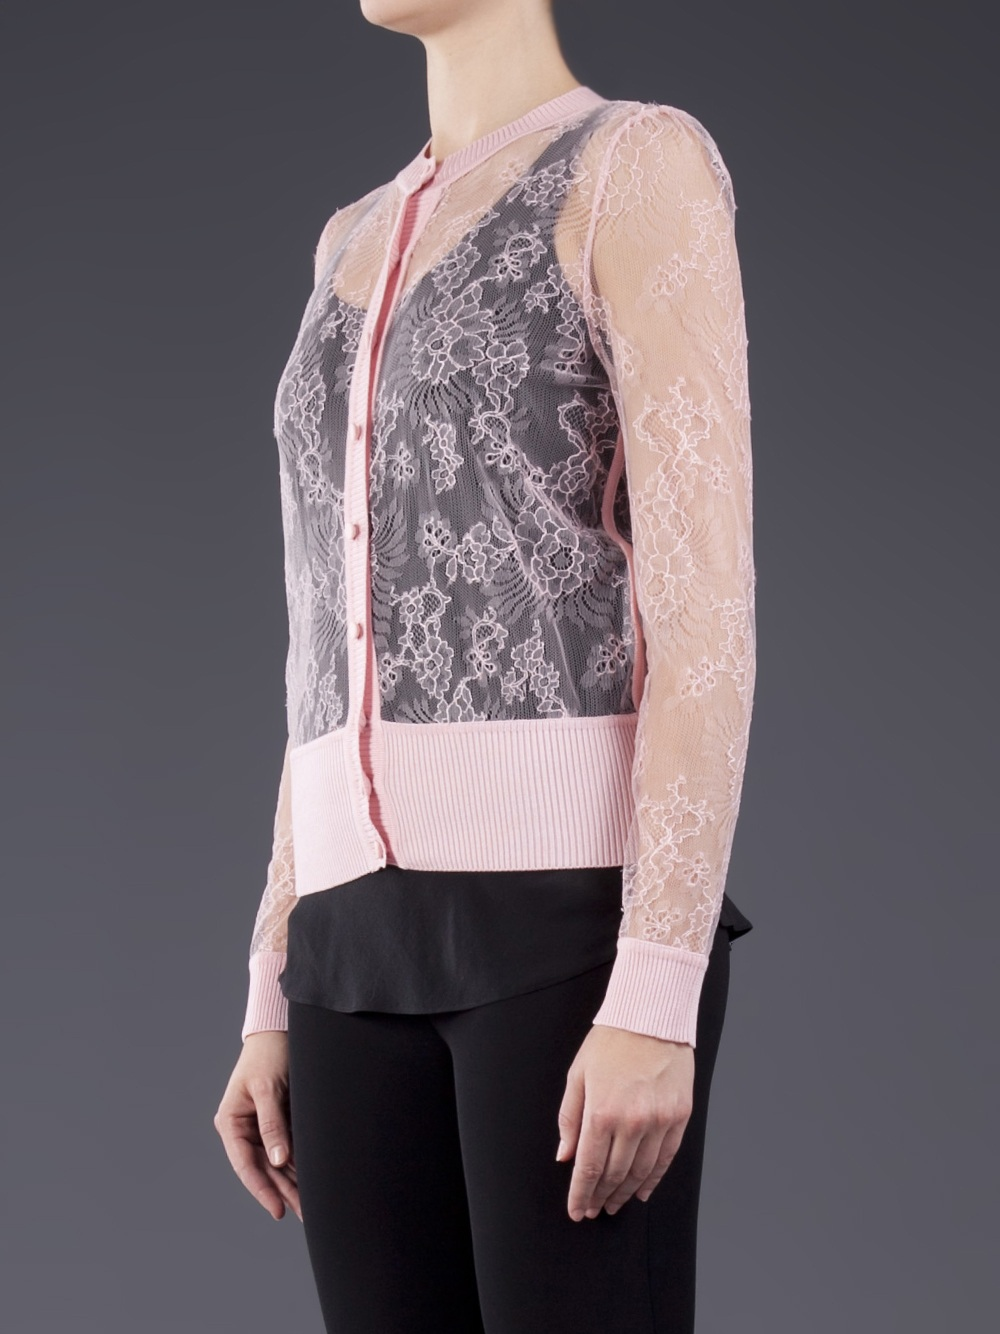 Valentino Sheer Lace Cardigan in Pink | Lyst